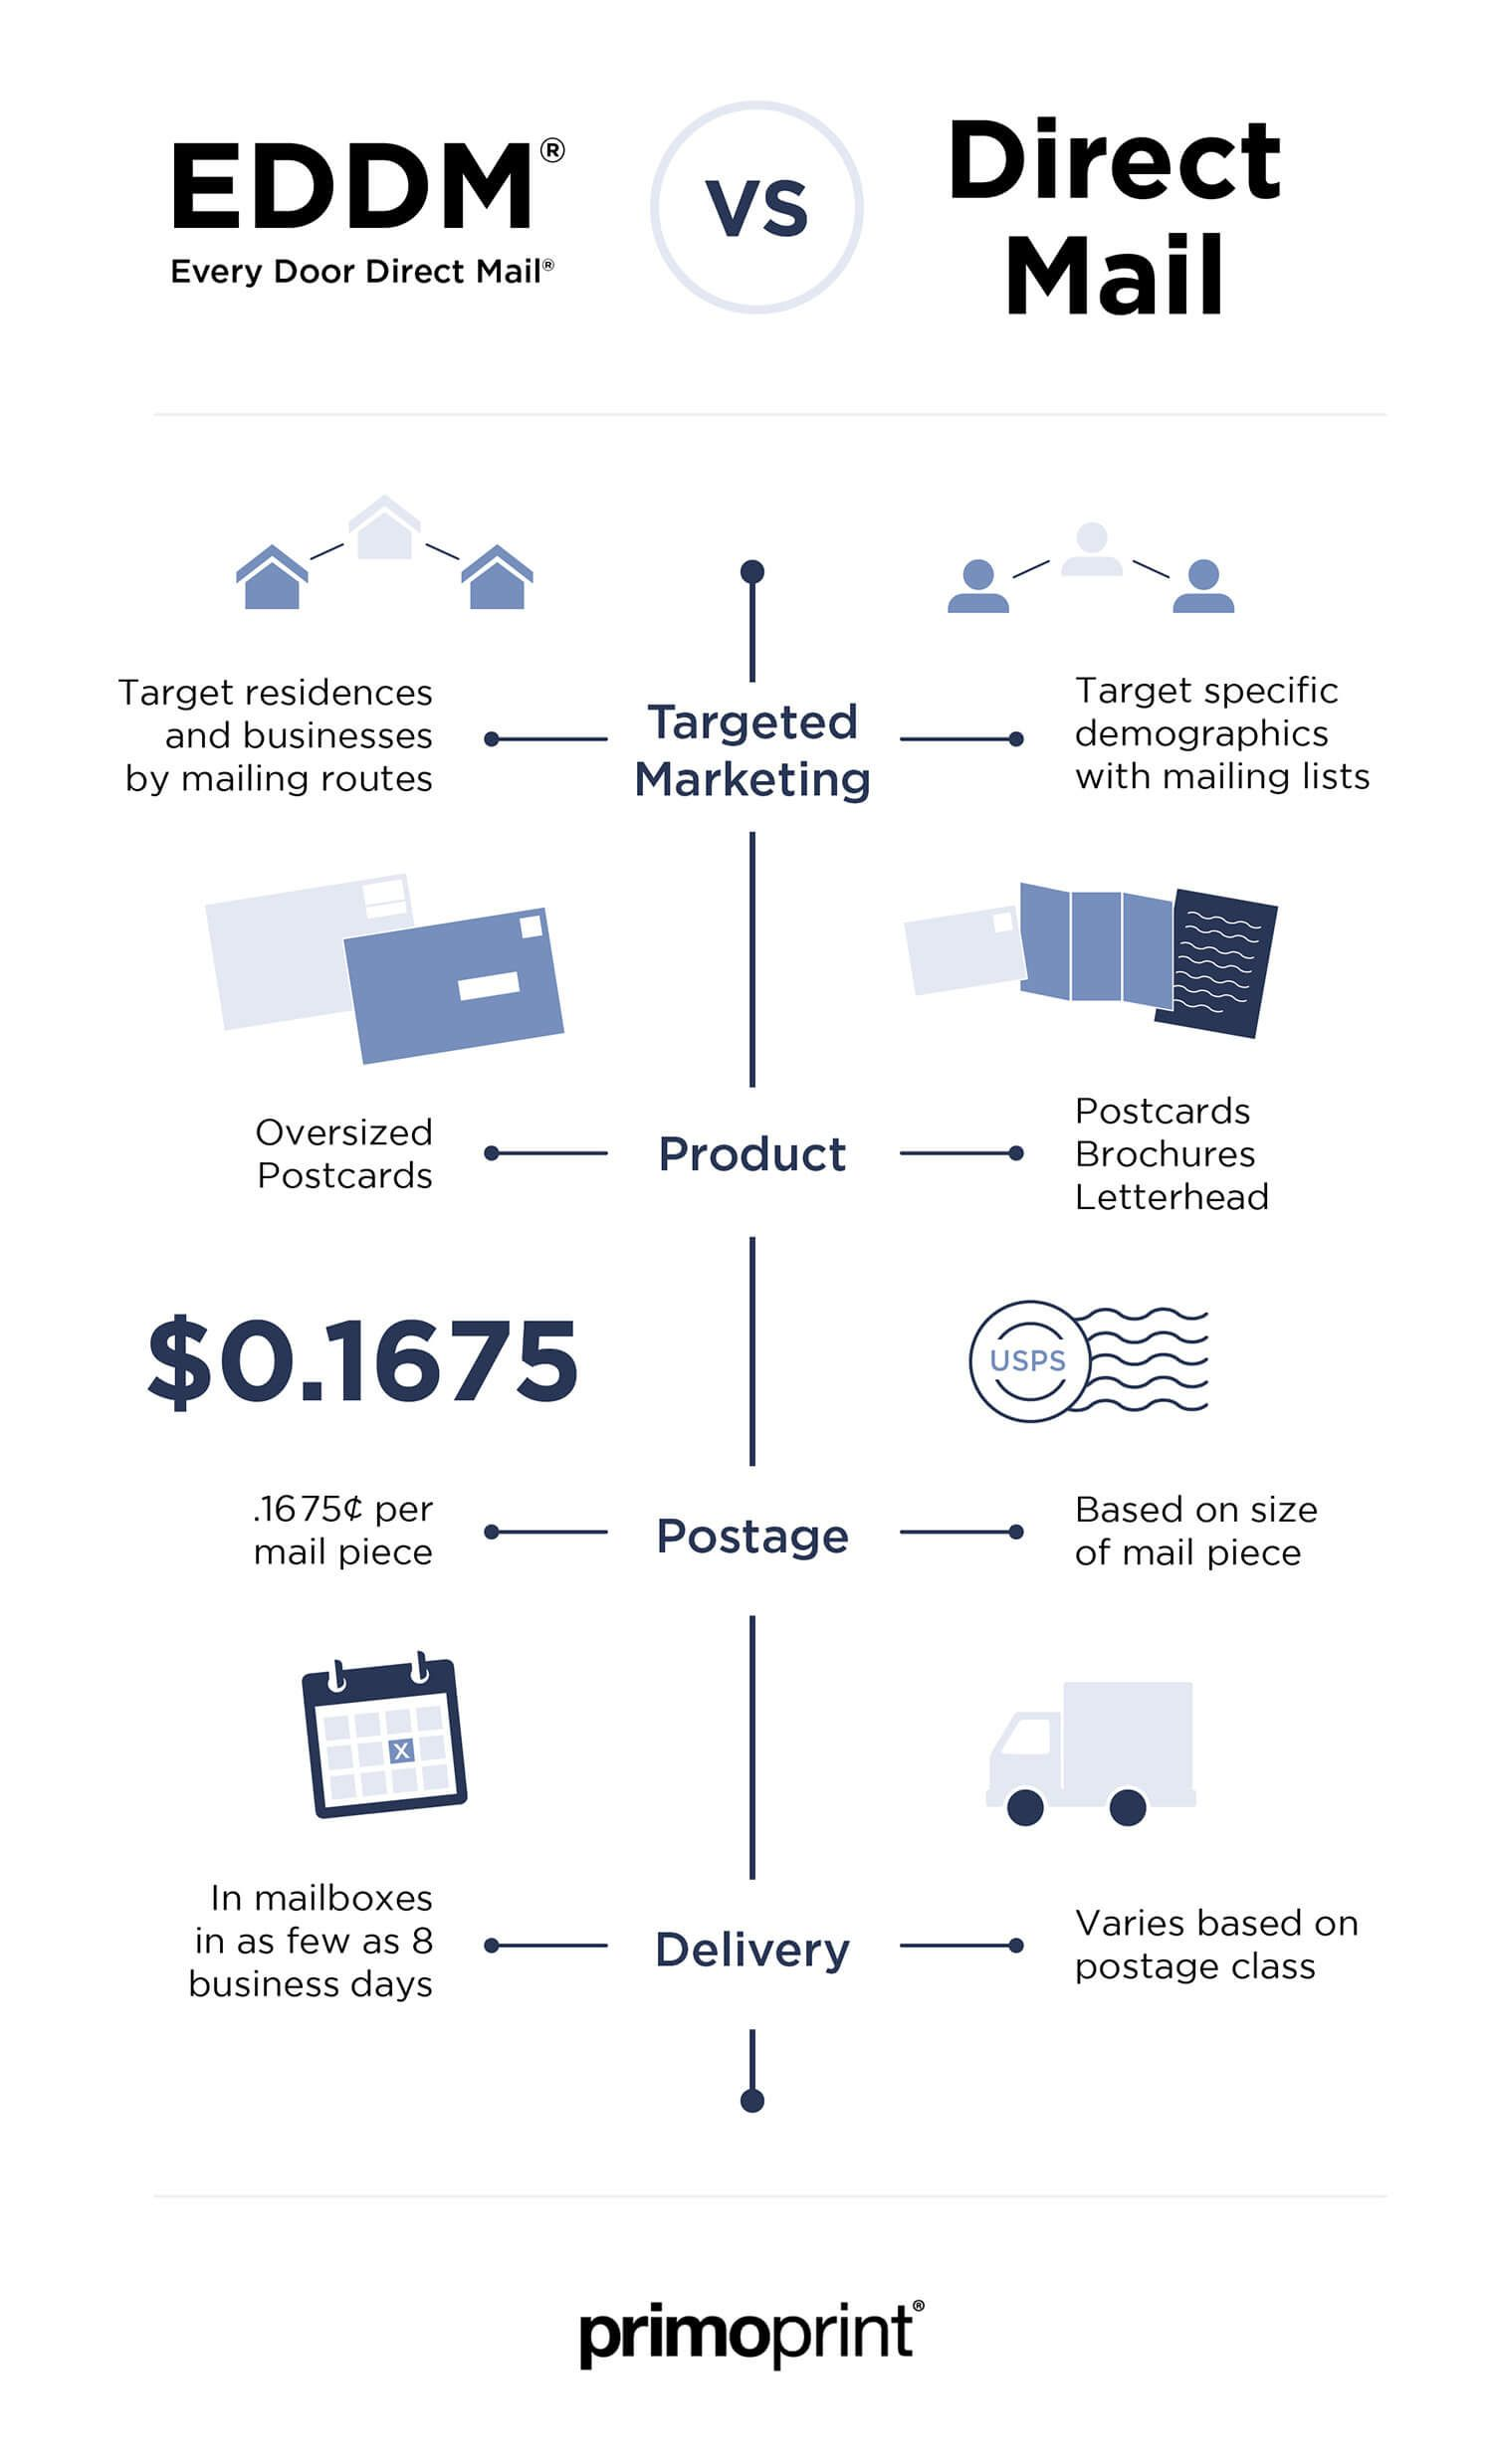 What's the Difference Between EDDM® and Direct Mail